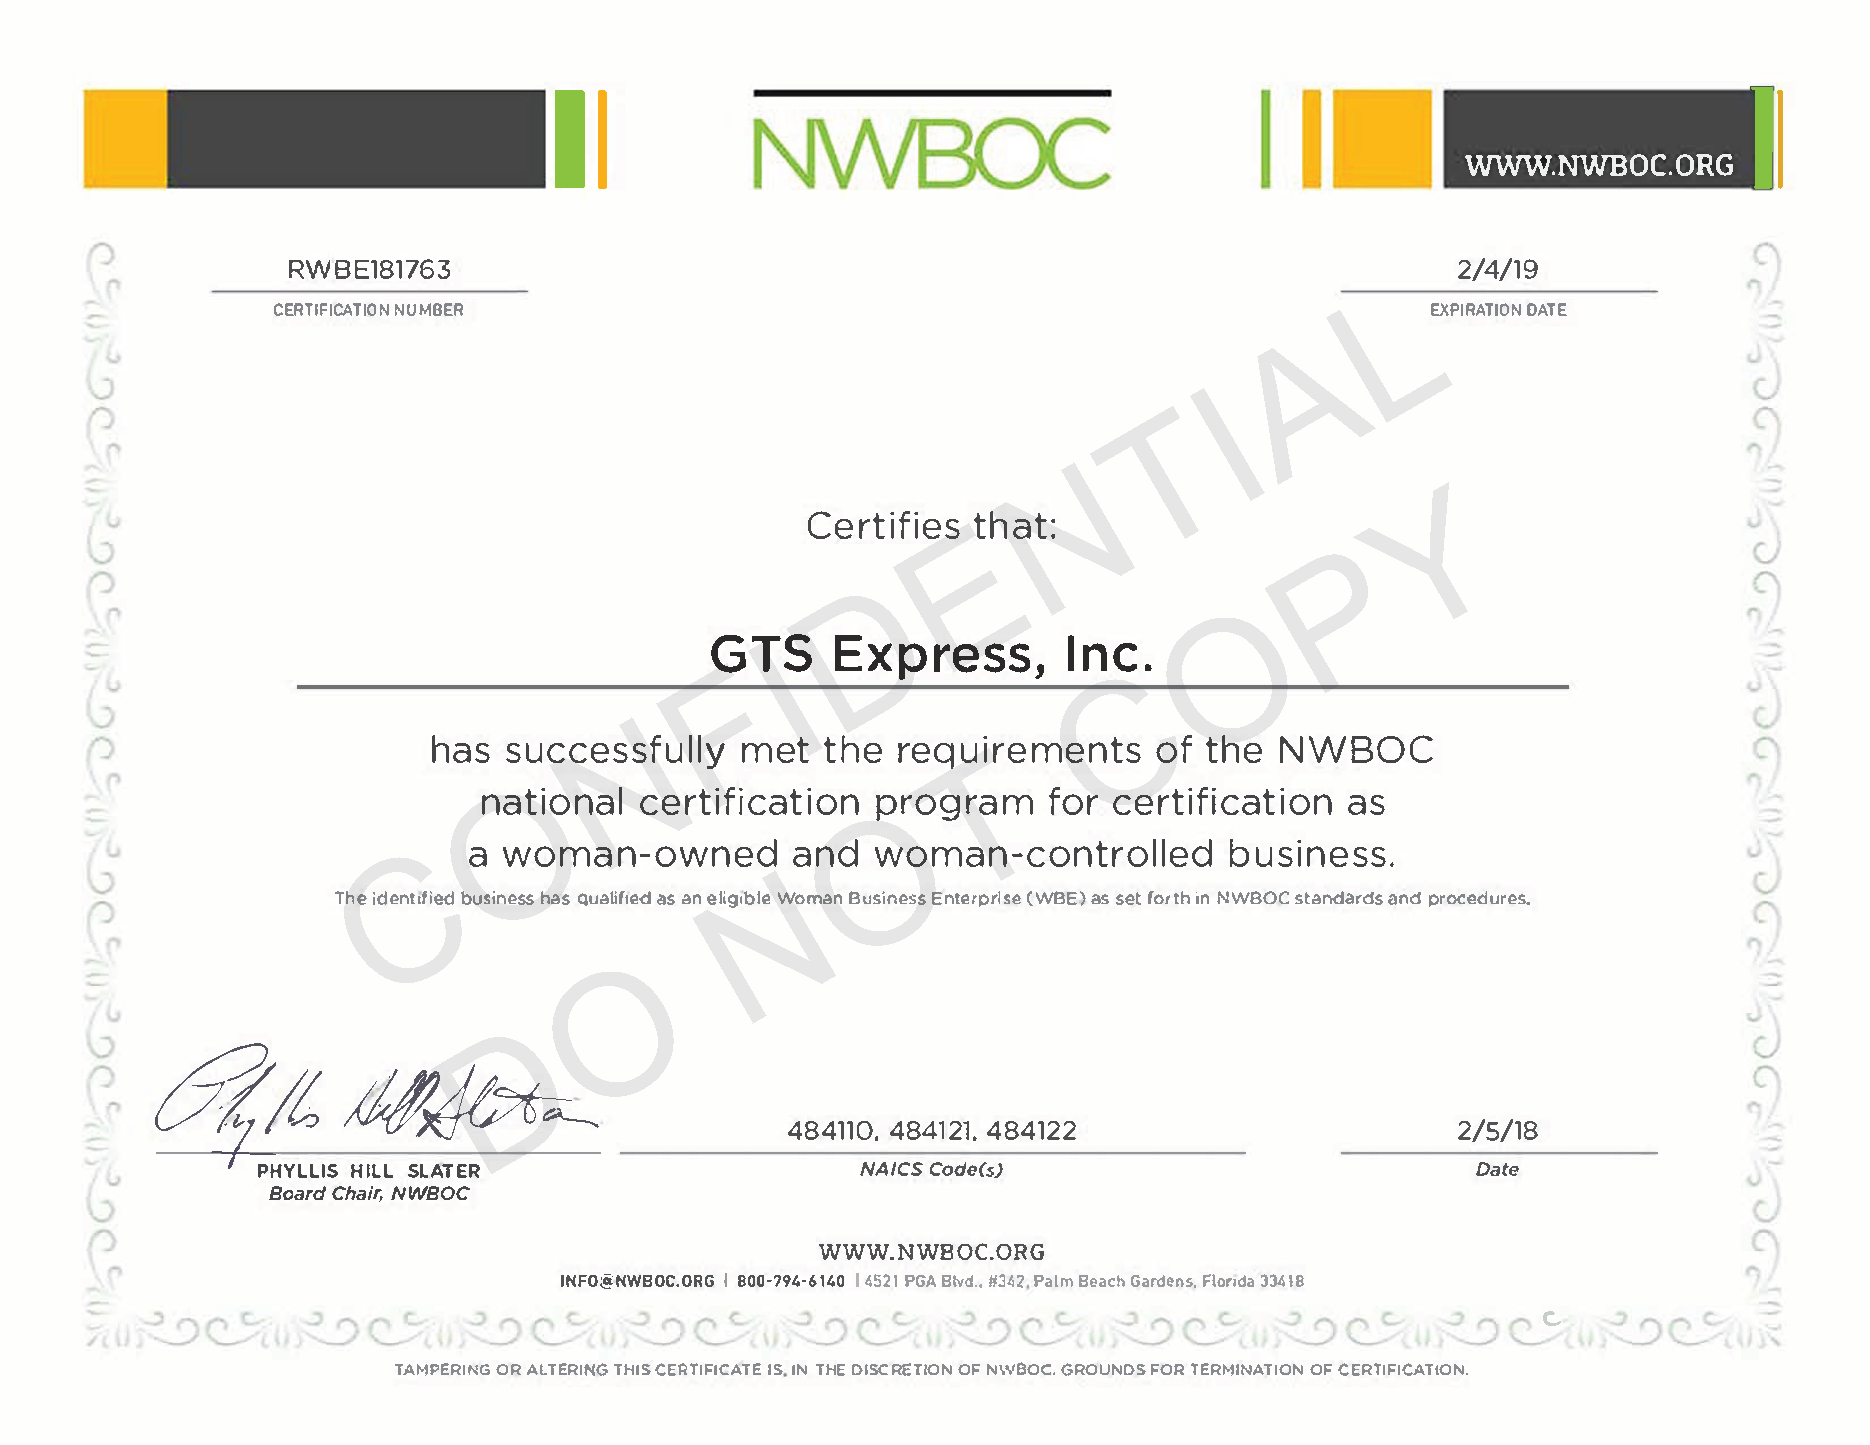 http://www.gtsexpressinc.com/wp-content/uploads/2016/03/NWBOC-GTS-Express-Inc.-2018-CONFIDENTAL-COPY.png